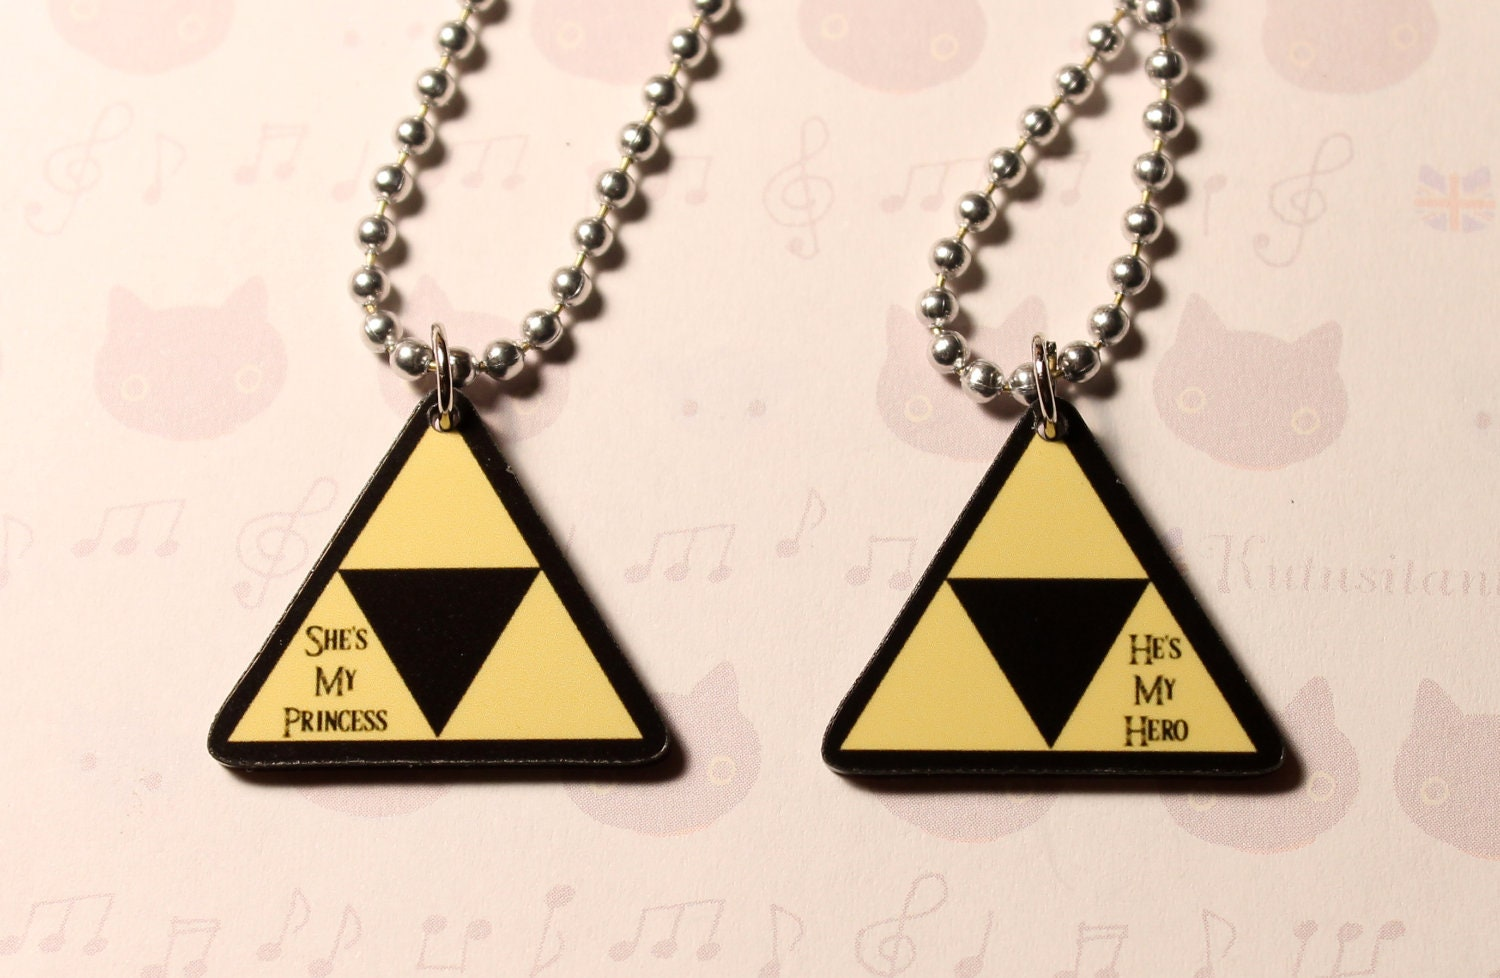 Legend Of Zelda Couple Necklace - Best Seller Necklace Review